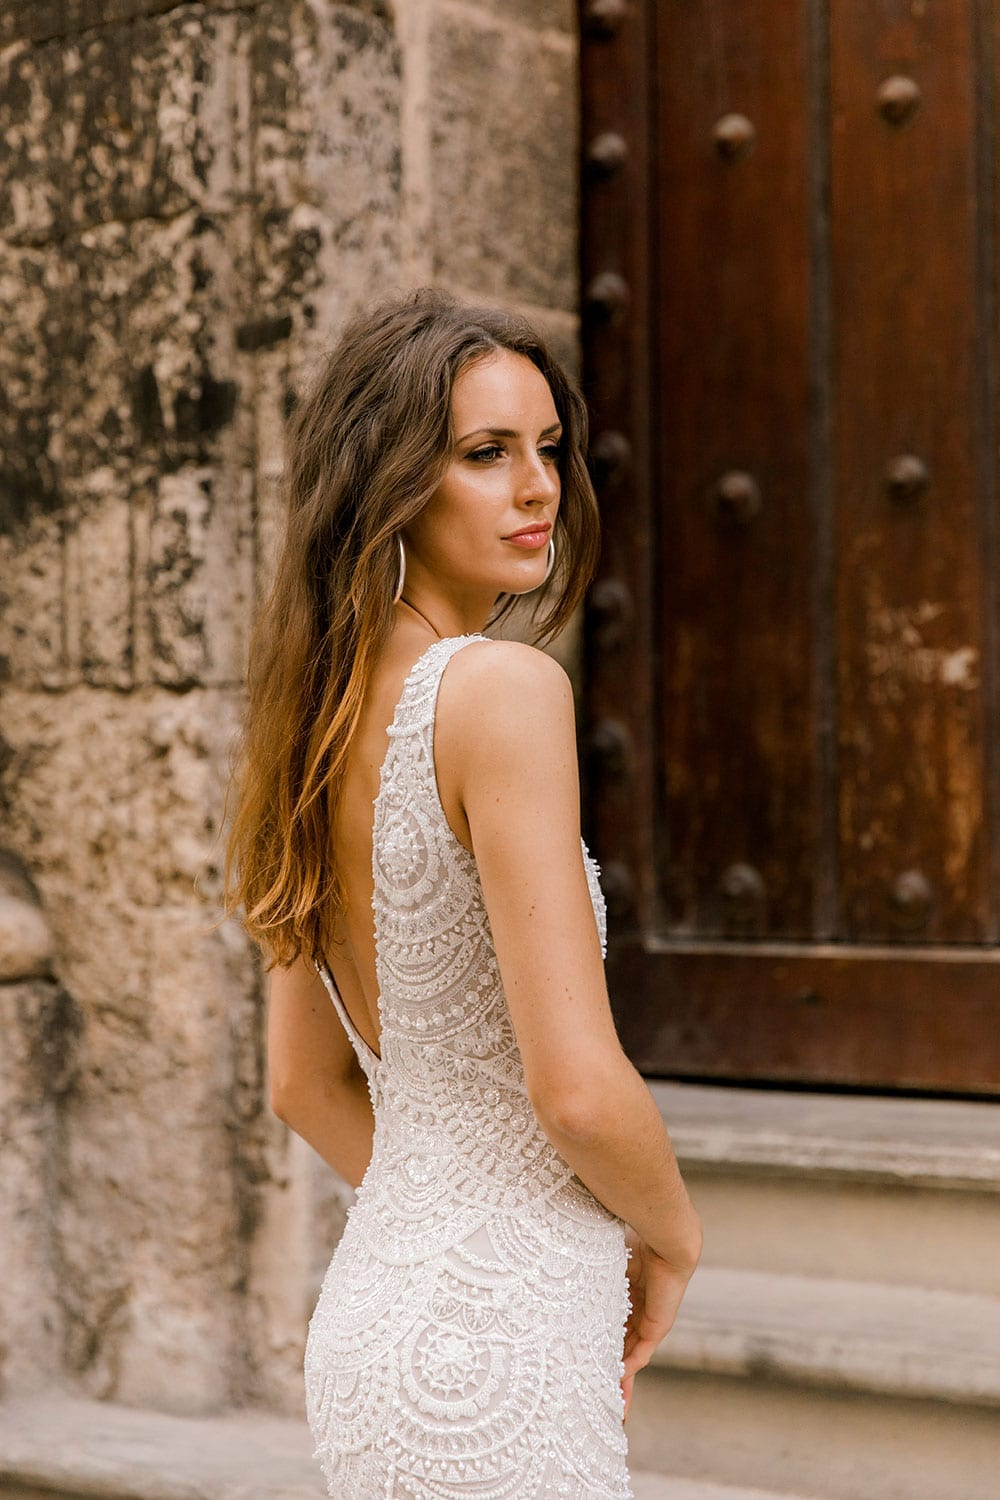 Model wearing Vinka Design Carlotta Wedding Dress, a V-Neck Beaded Mermaid Dress on the streets of Havana in front of an old wooden door